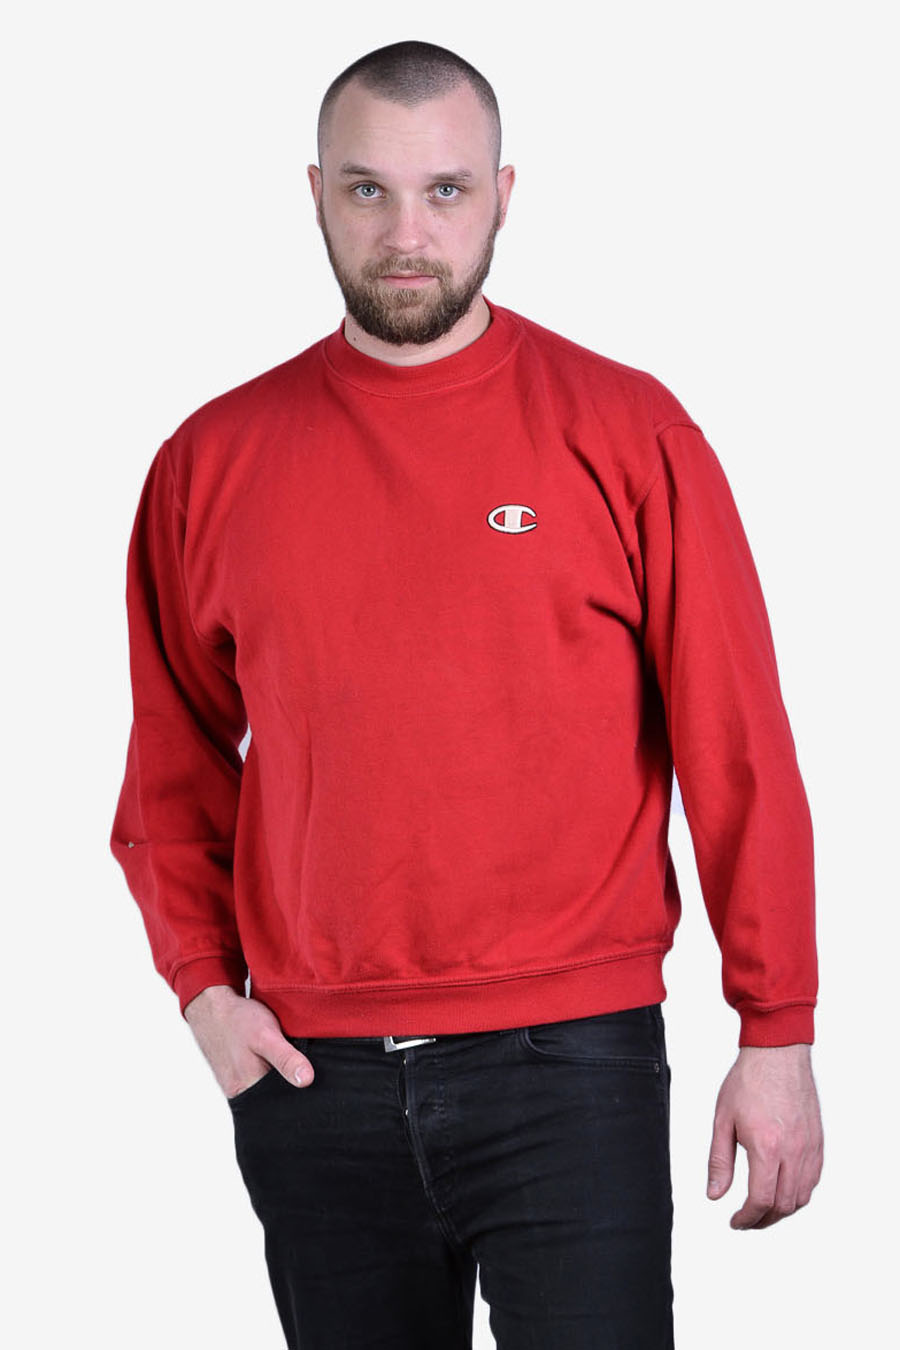 Vintage Champion red sweatshirt